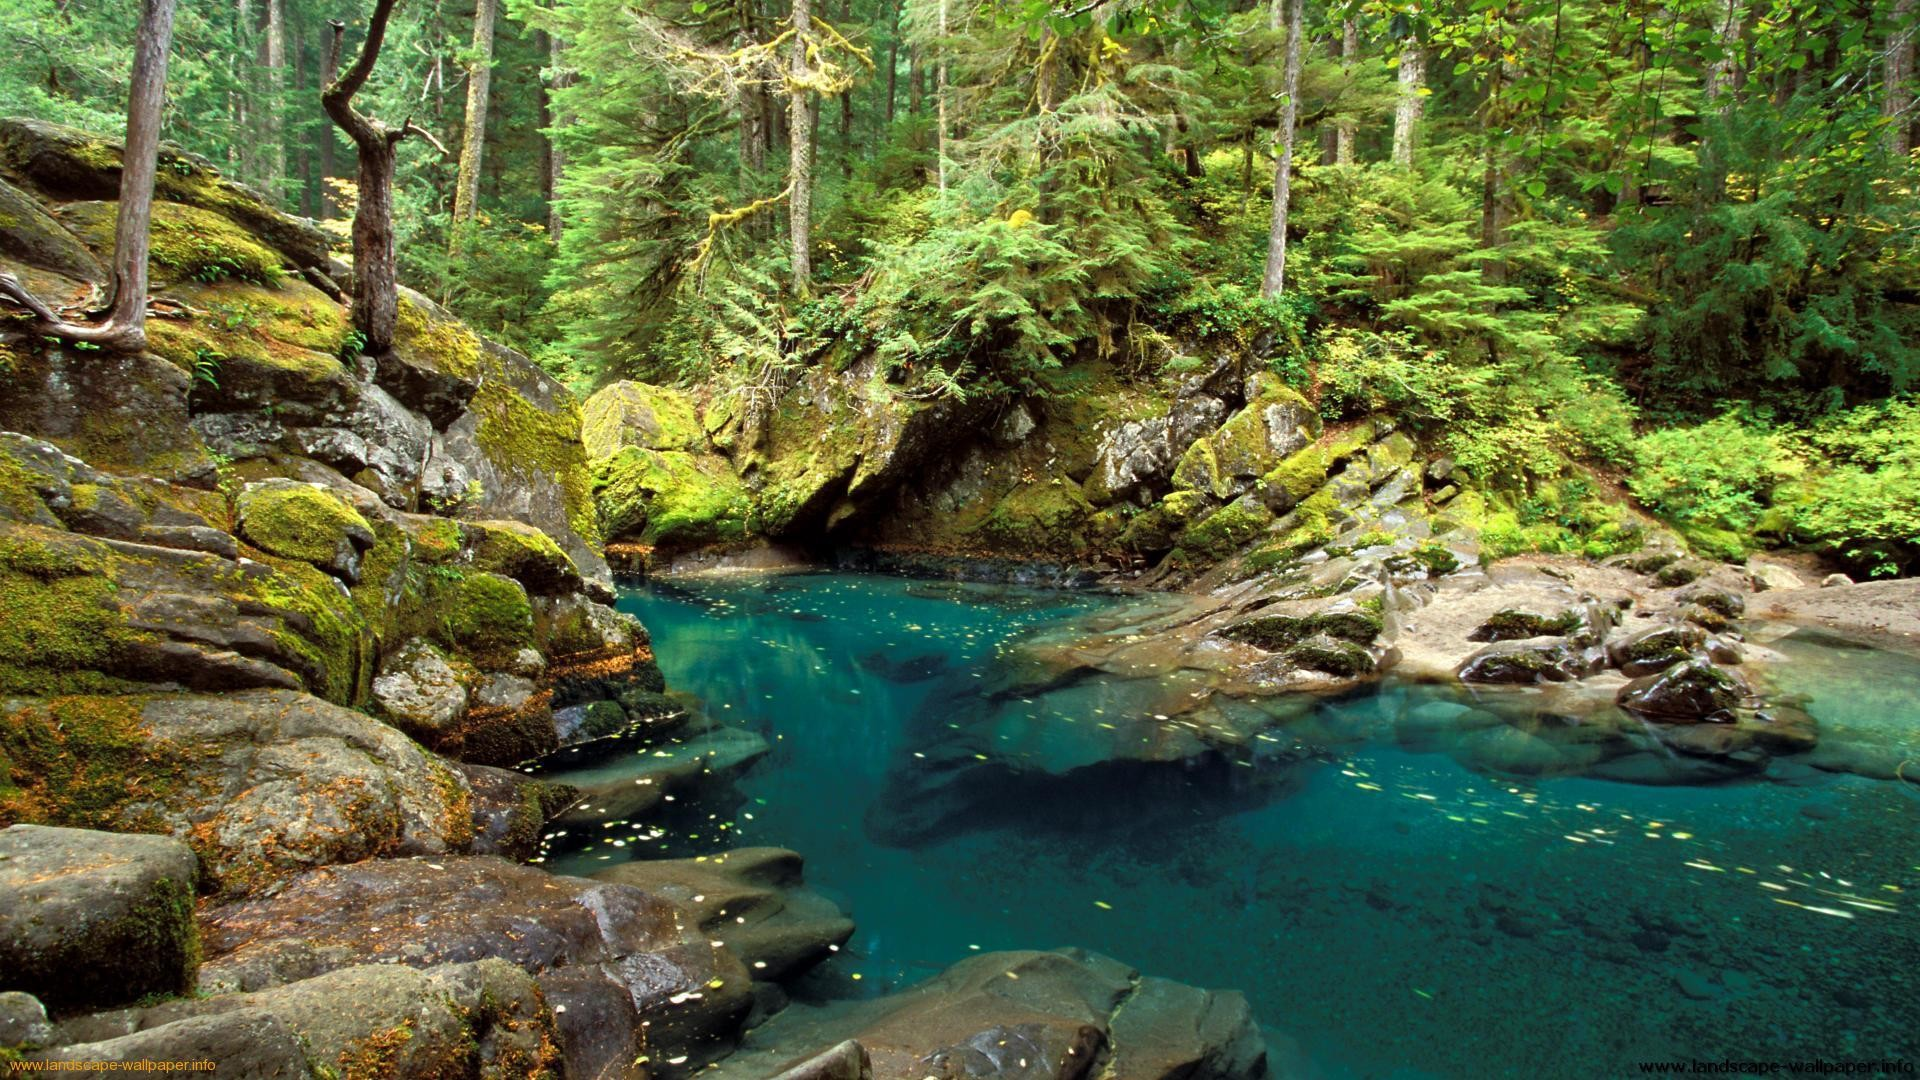 Nature wallpapers 1600x900 wallpapertag - Wallpapers 1600x900 ...